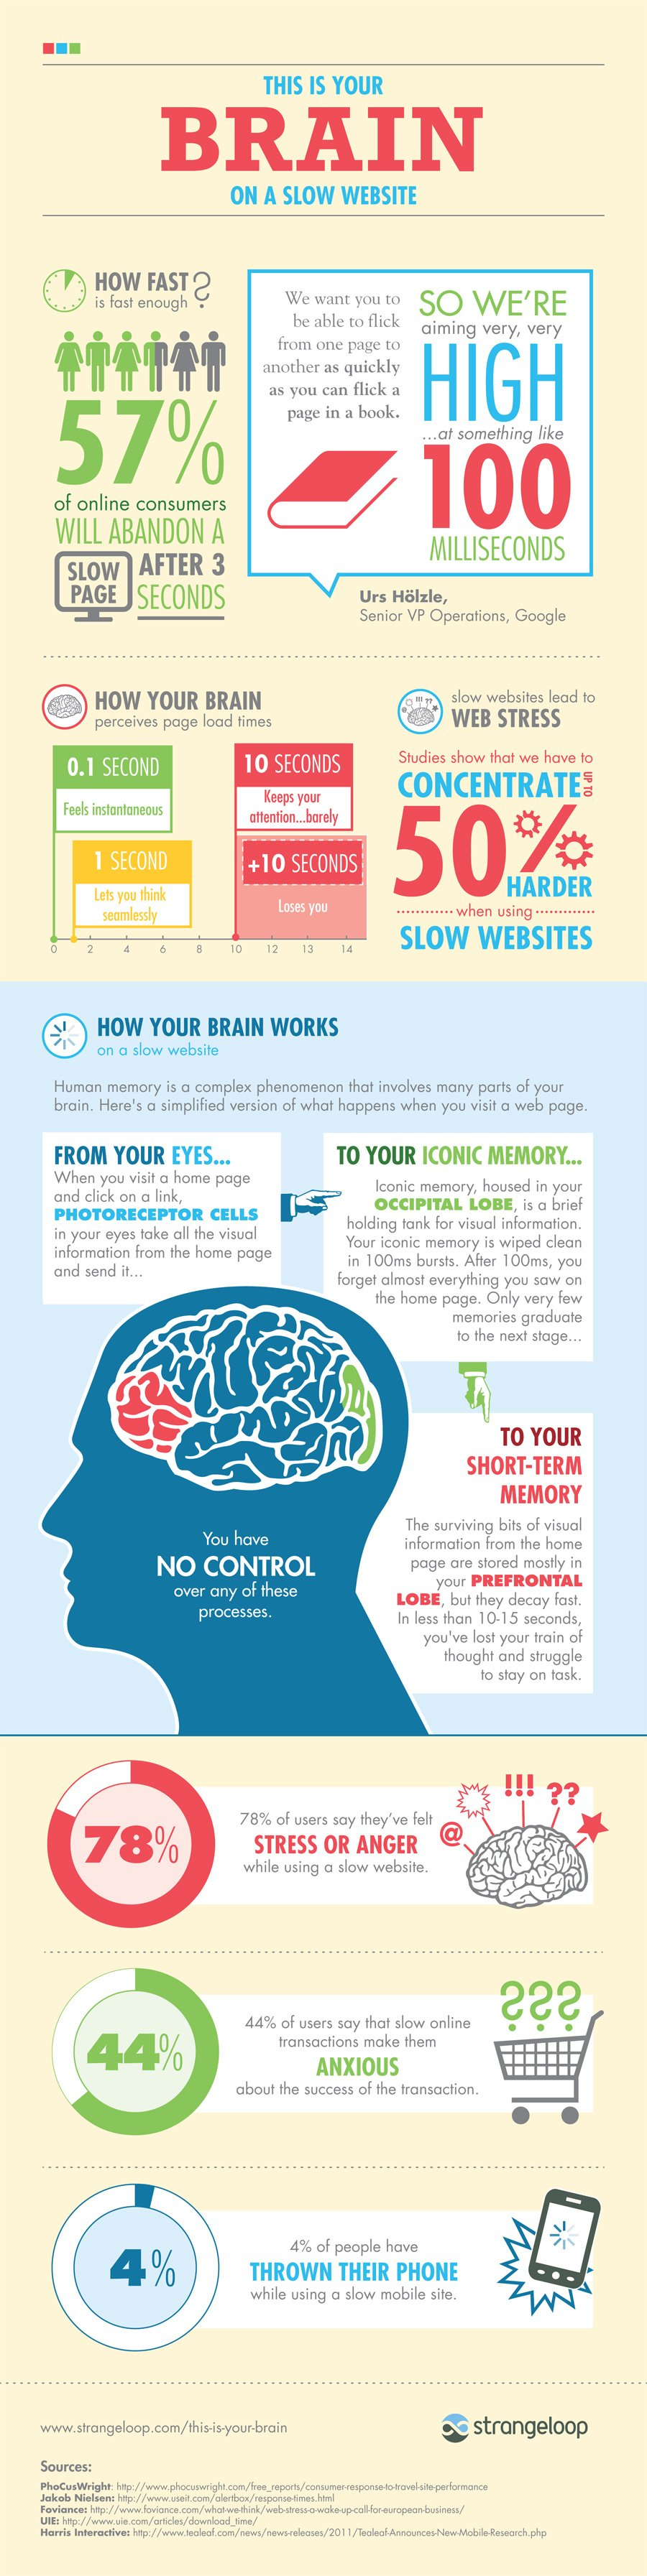 this-is-your-brain-on-a-slow-website_509982efd5c4b